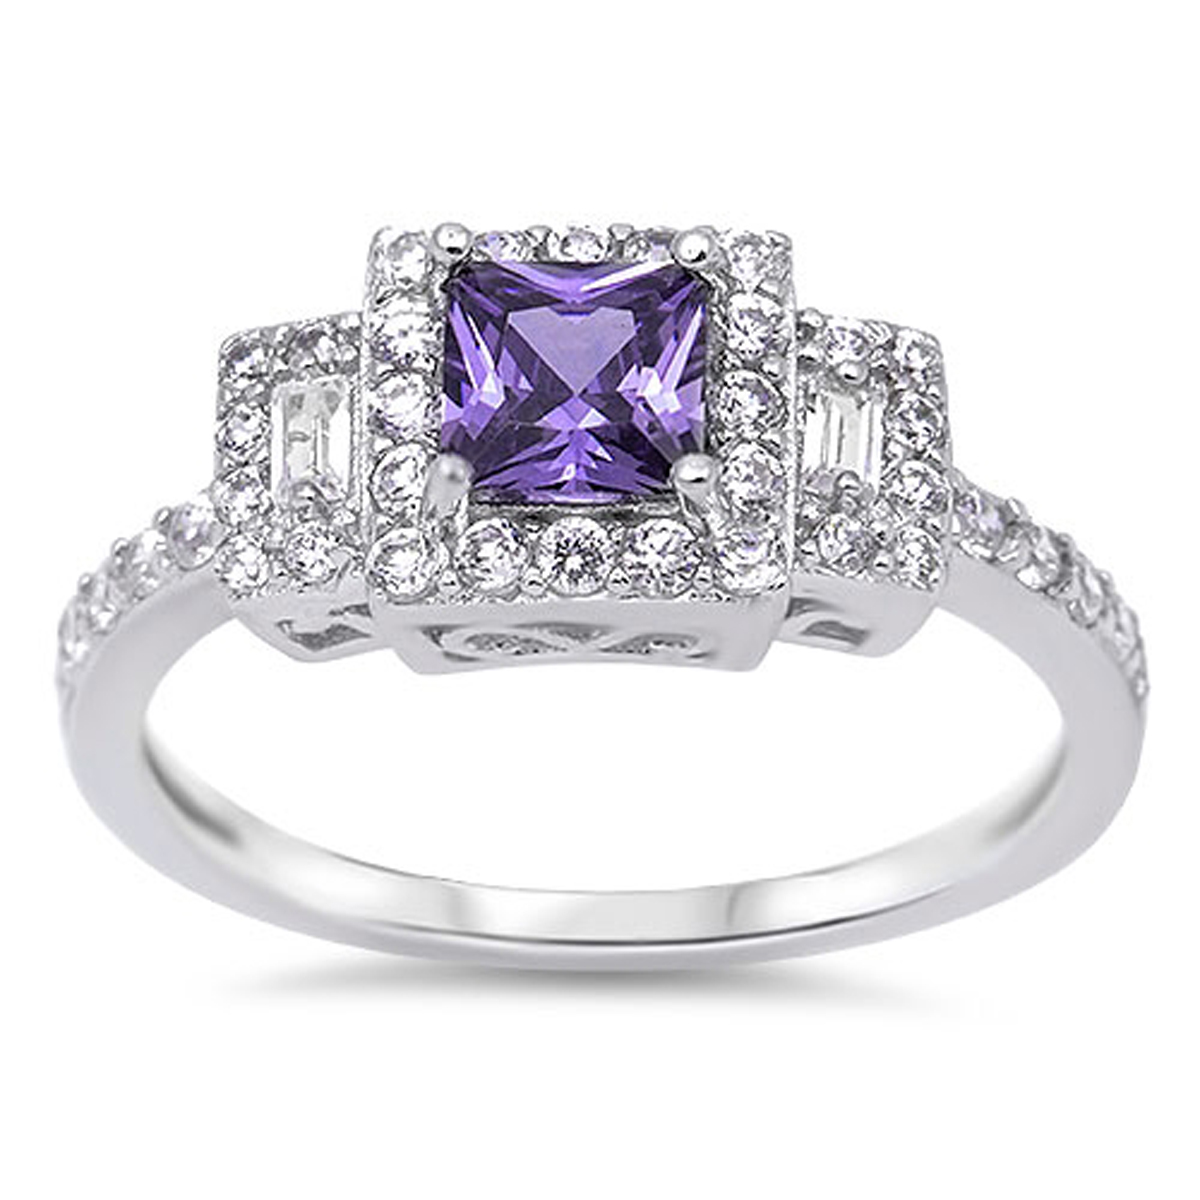 Sterling Silver Women's Flawless Simulated Amethyst Cubic Zirconia Simulated Princess Cut Wedding Ring (Sizes 4-12) (Ring Size 4)